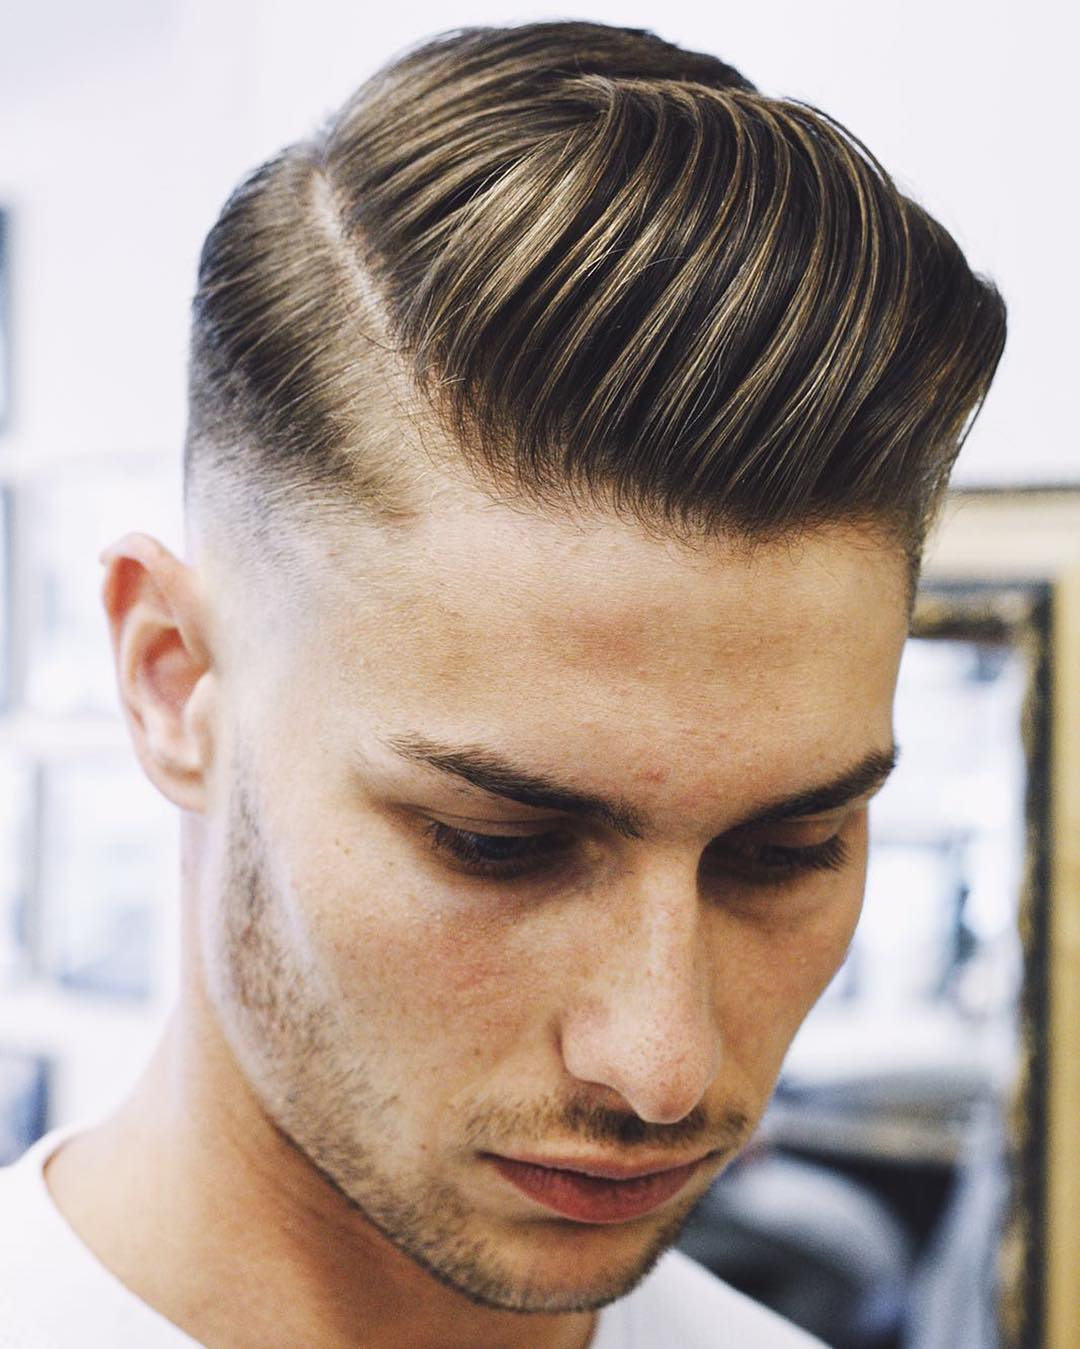 25 popular haircuts for men 2018 side part slicked back cool haircut for men winobraniefo Gallery